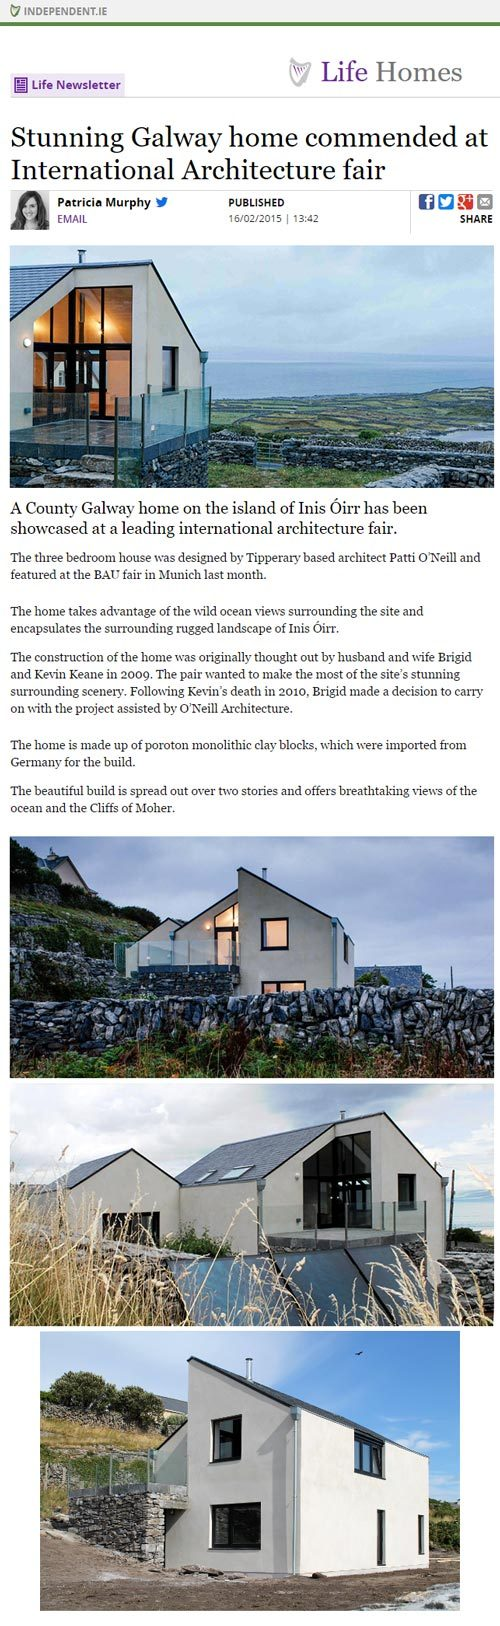 Stunning Galway home commended at International Architecture fair